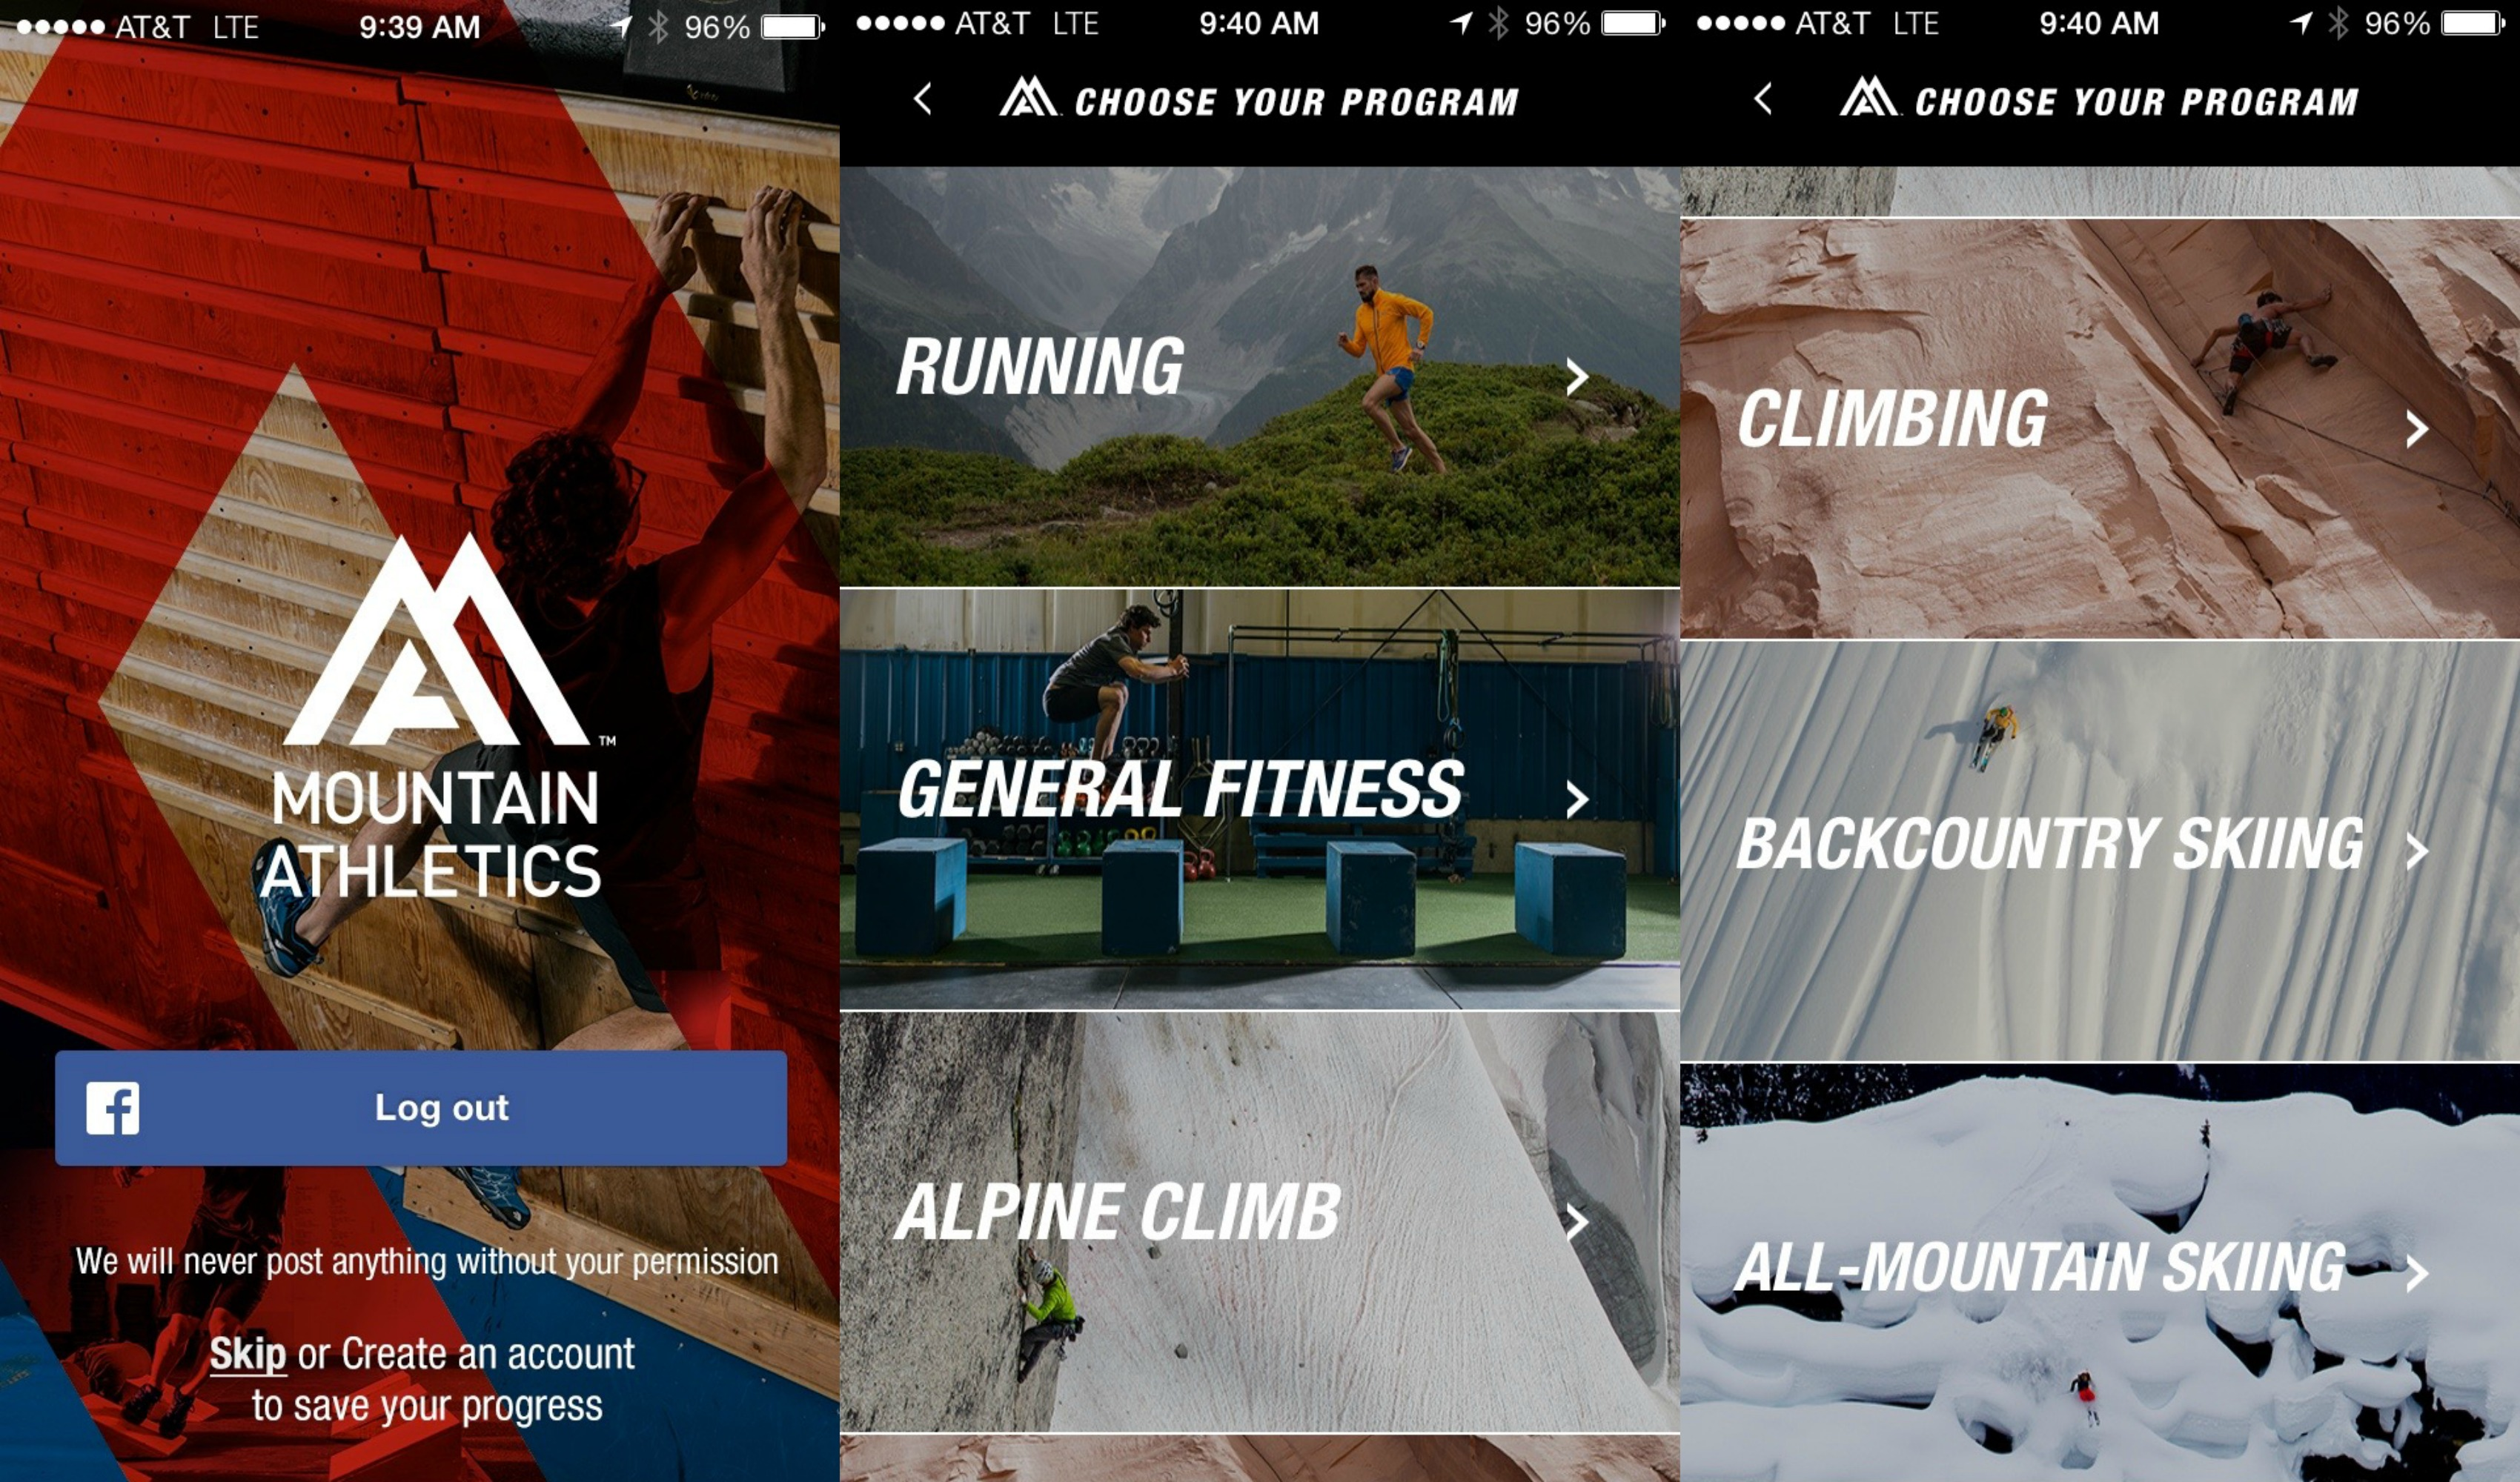 The North Face Mountain Athletics training app